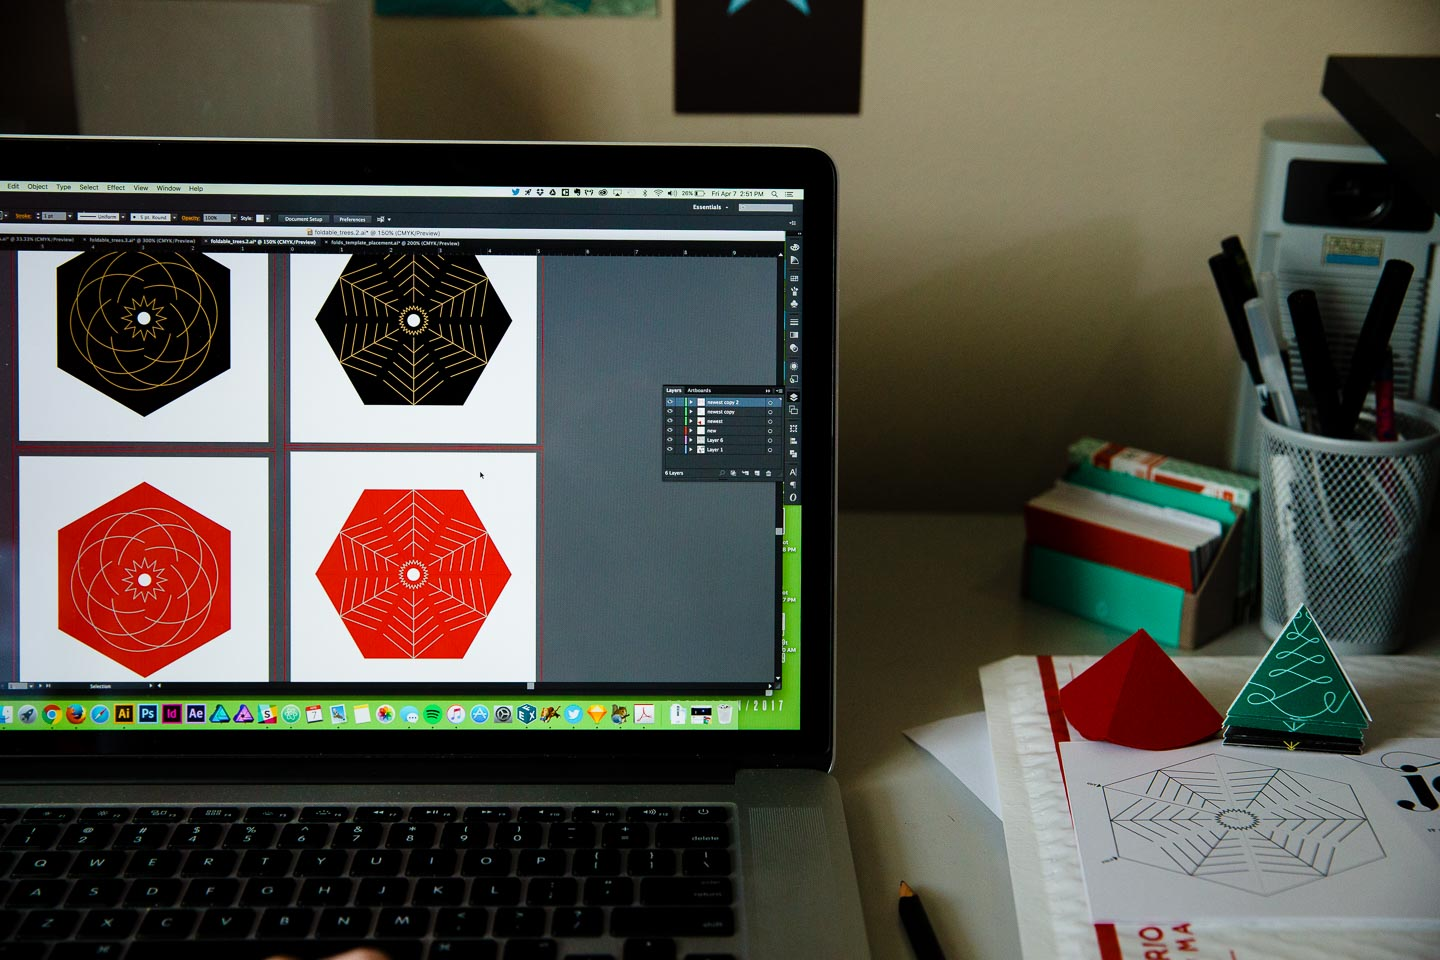 A laptop screen displaying four hexagons in black and red